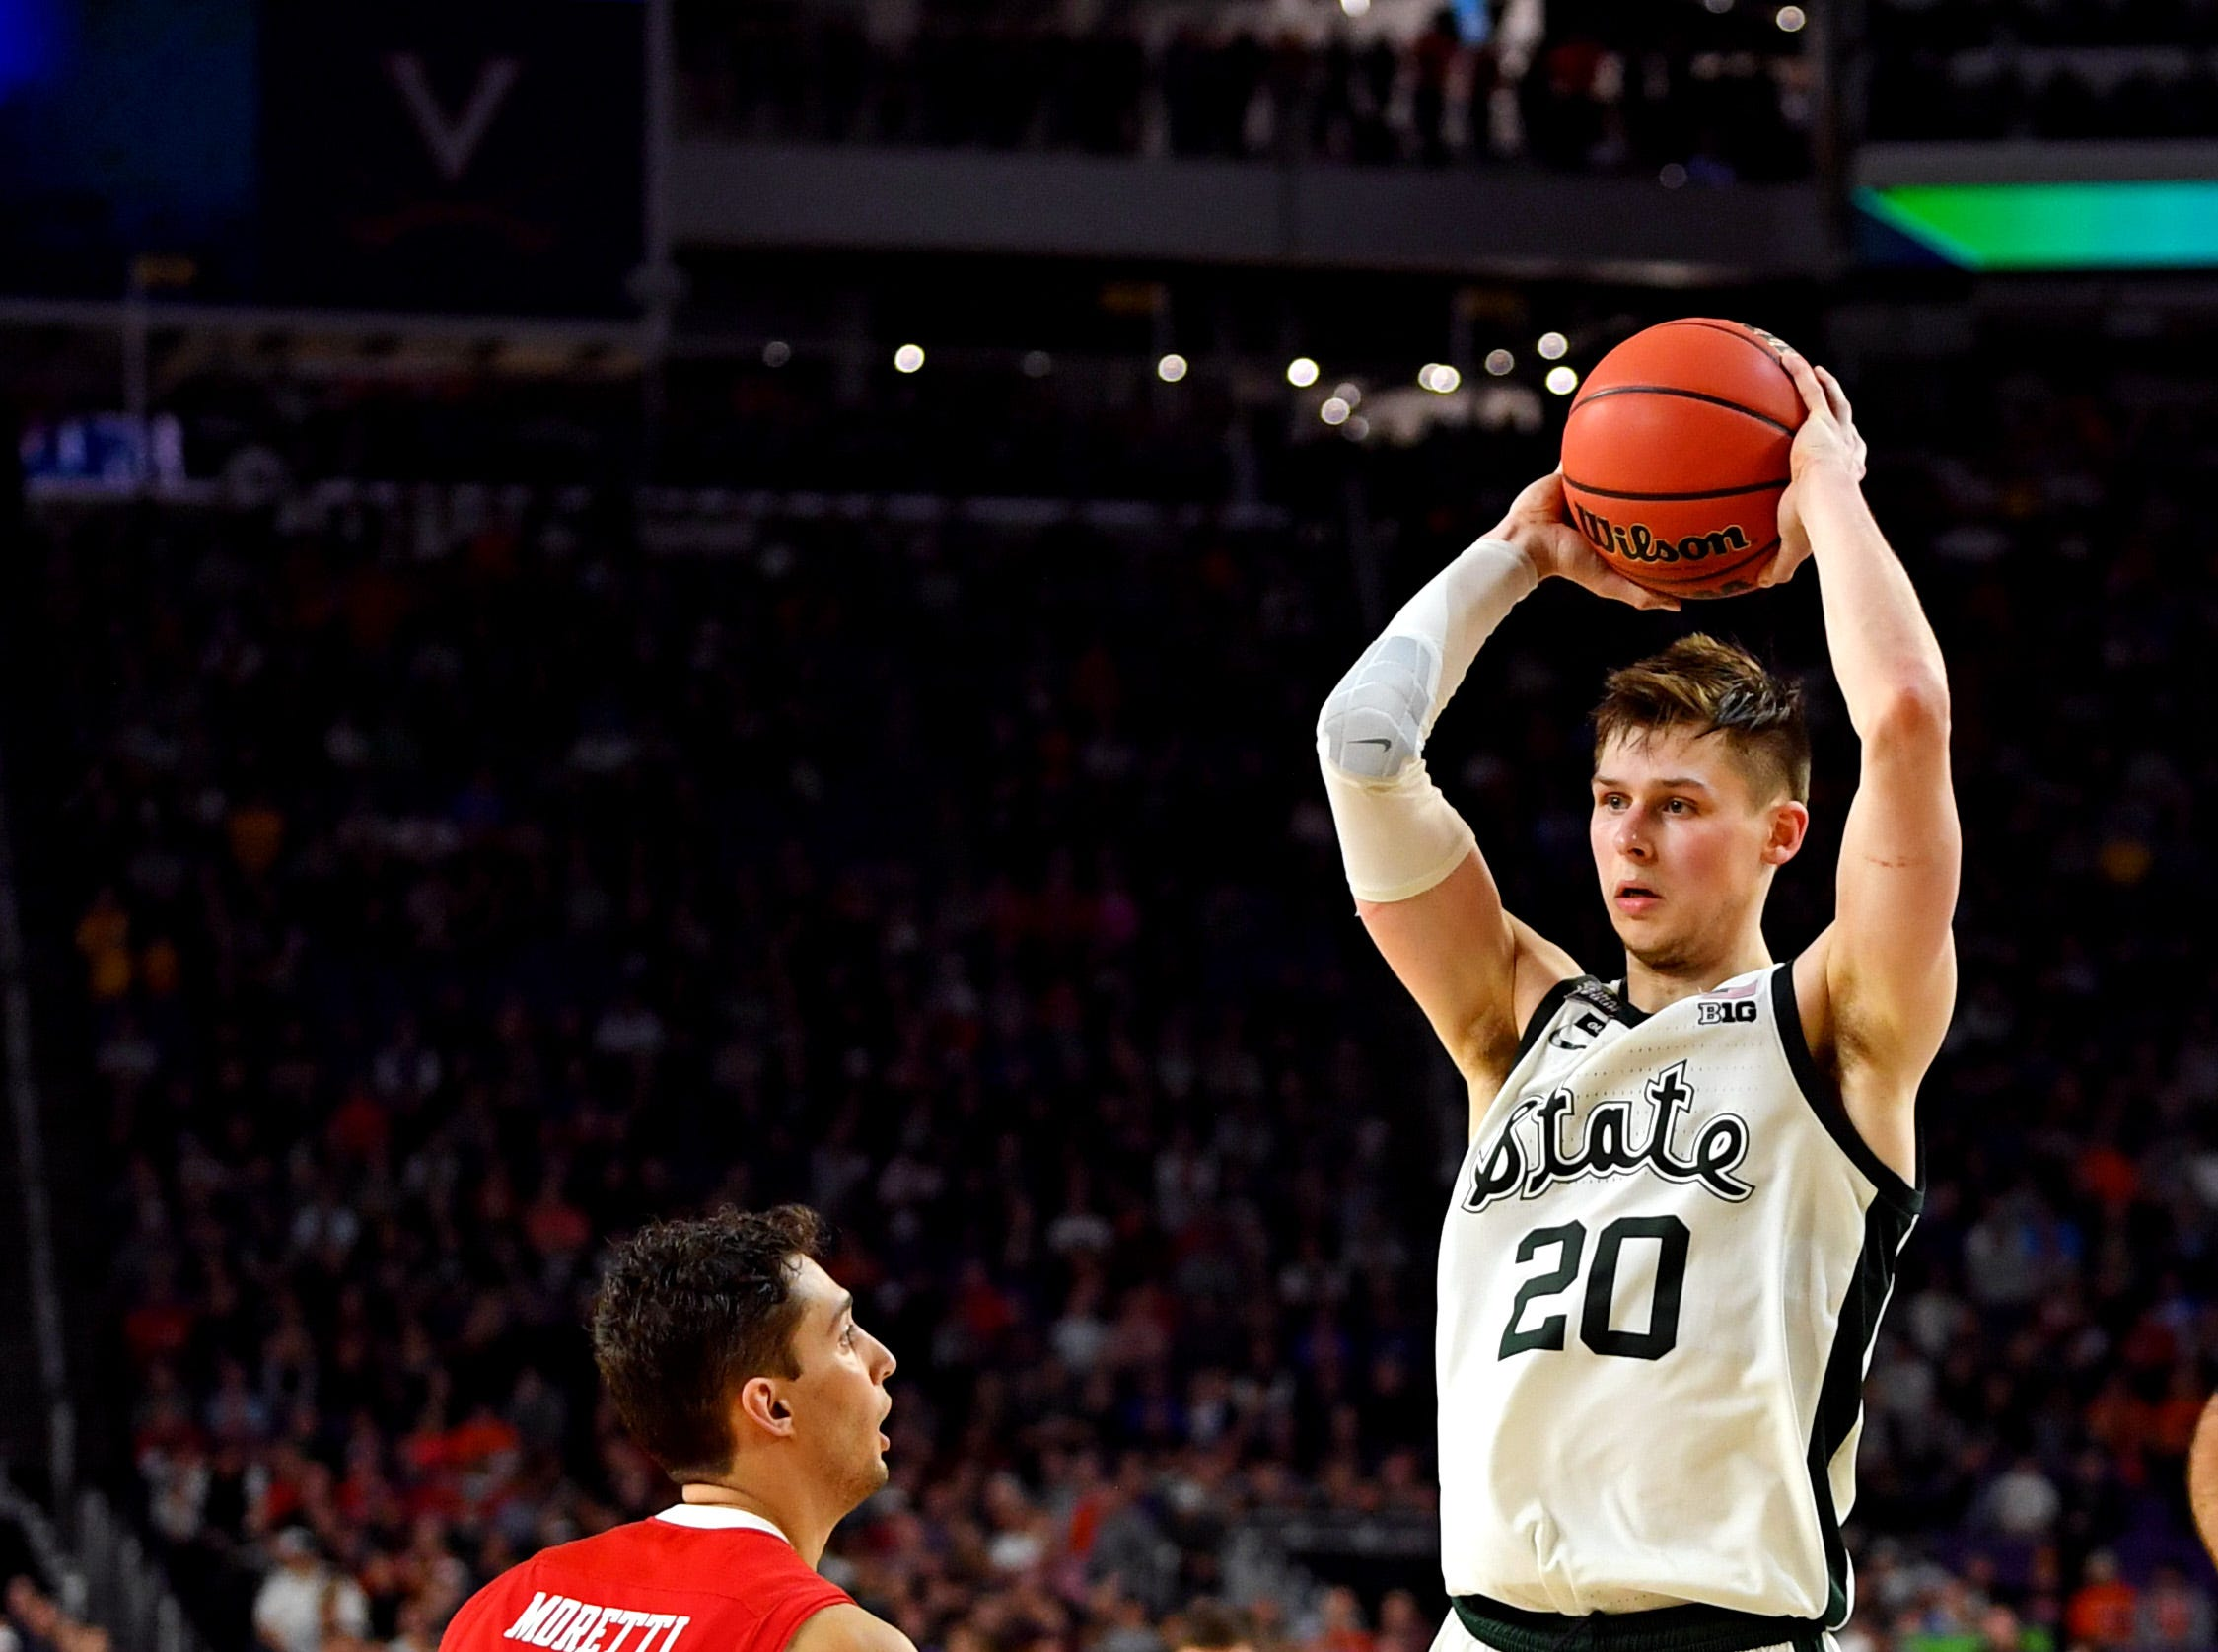 Apr 6, 2019; Minneapolis, MN, USA; Michigan State Spartans guard Matt McQuaid (20) handles the ball against Texas Tech Red Raiders guard Davide Moretti (25) during the second half in the semifinals of the 2019 men's Final Four at US Bank Stadium. Mandatory Credit: Bob Donnan-USA TODAY Sports